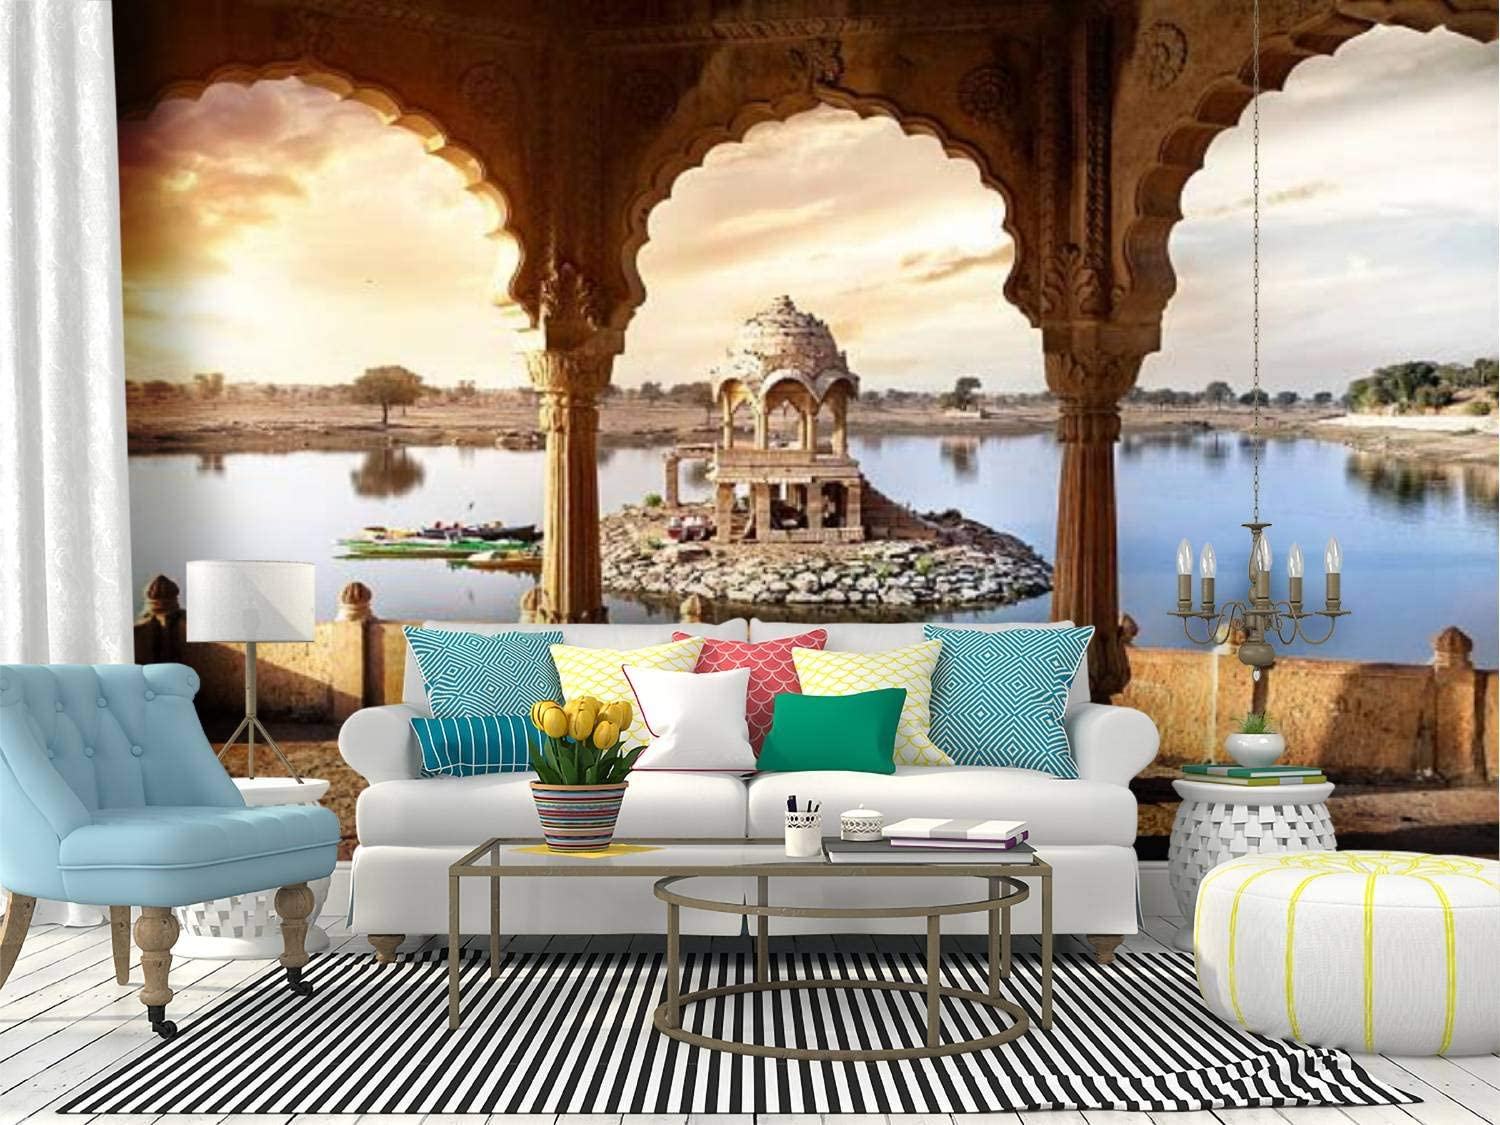 Amazon Com Wall Mural Temple On The Water In India Historic Architecture Stock Pictures Peel And Stick Wallpaper Self Adhesive Wallpaper Large Wall Sticker Removable Vinyl Film Roll Shelf Paper Home Decor Home